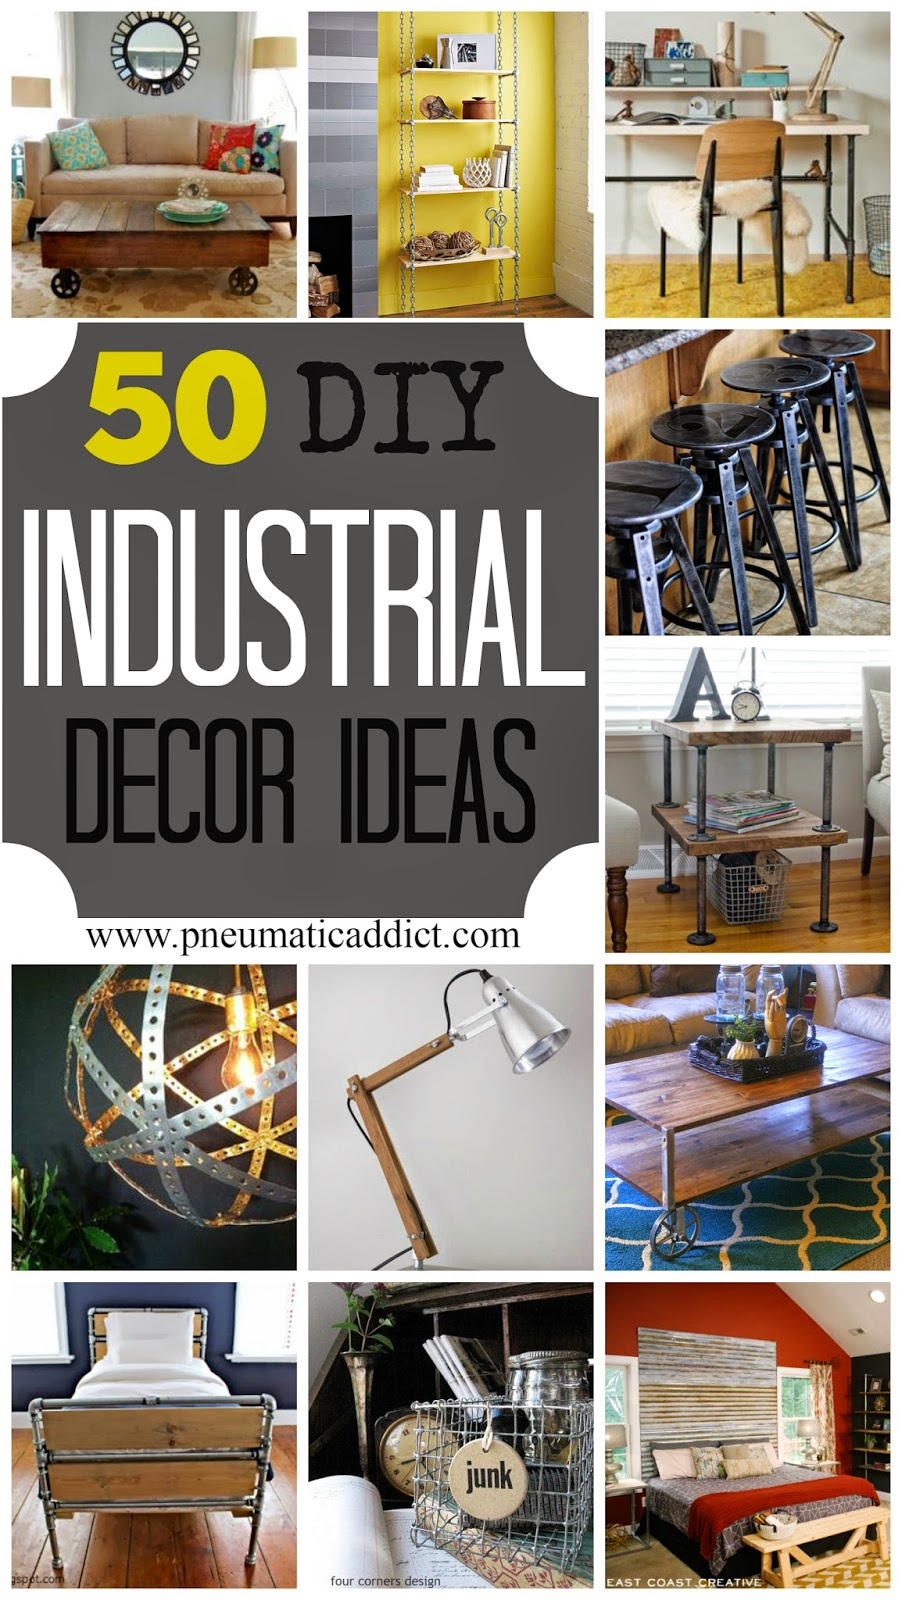 Home Decorating Ideas 2014 pneumatic addict : 50 diy industrial decor ideas